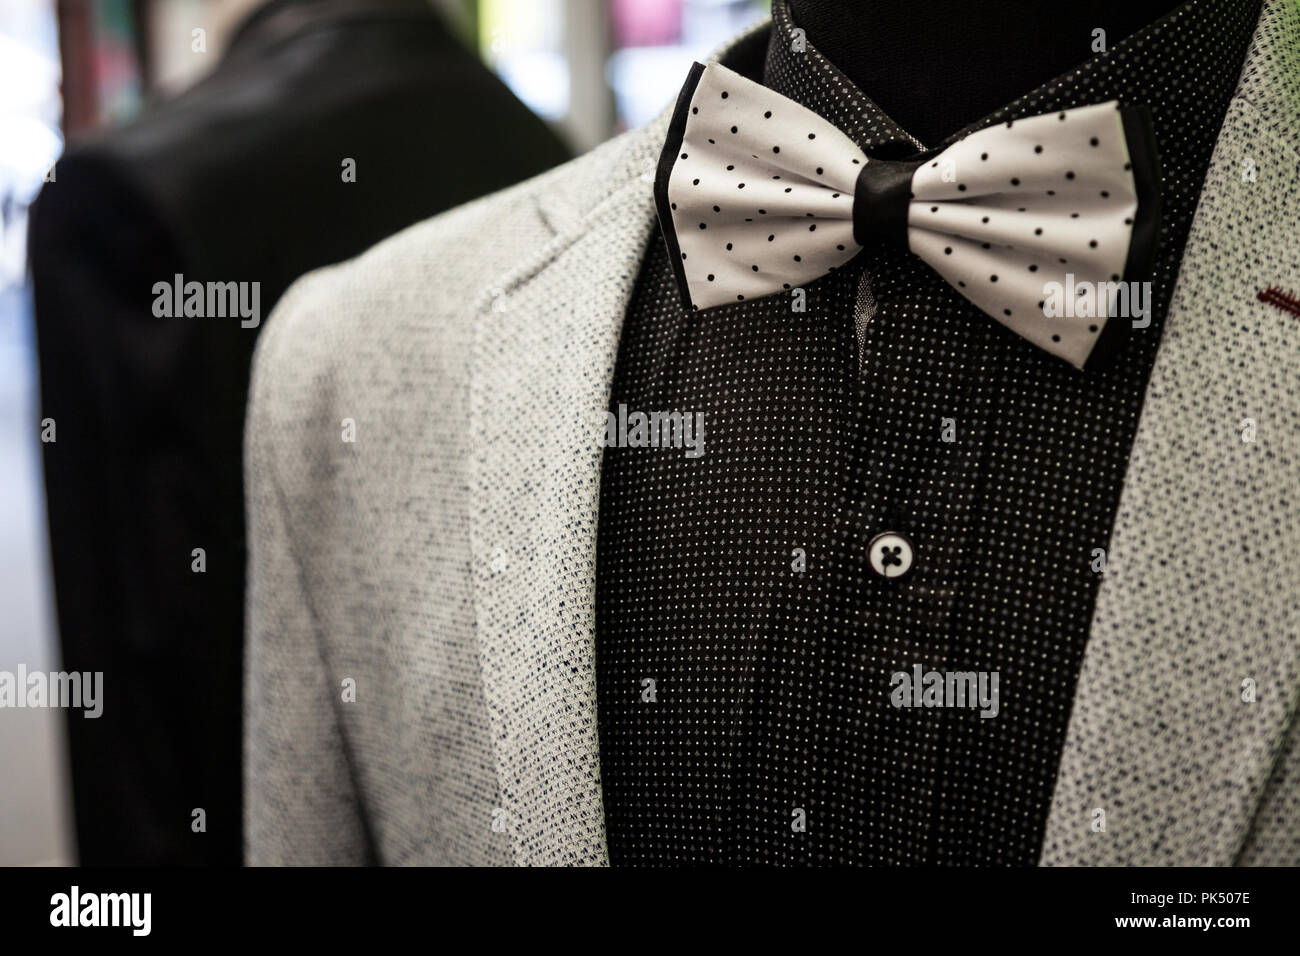 White bowtie with black dots, on display with a black shirt and a white wool suit jacket. Bow ties are a symbol of elegance and style, currently back  - Stock Image